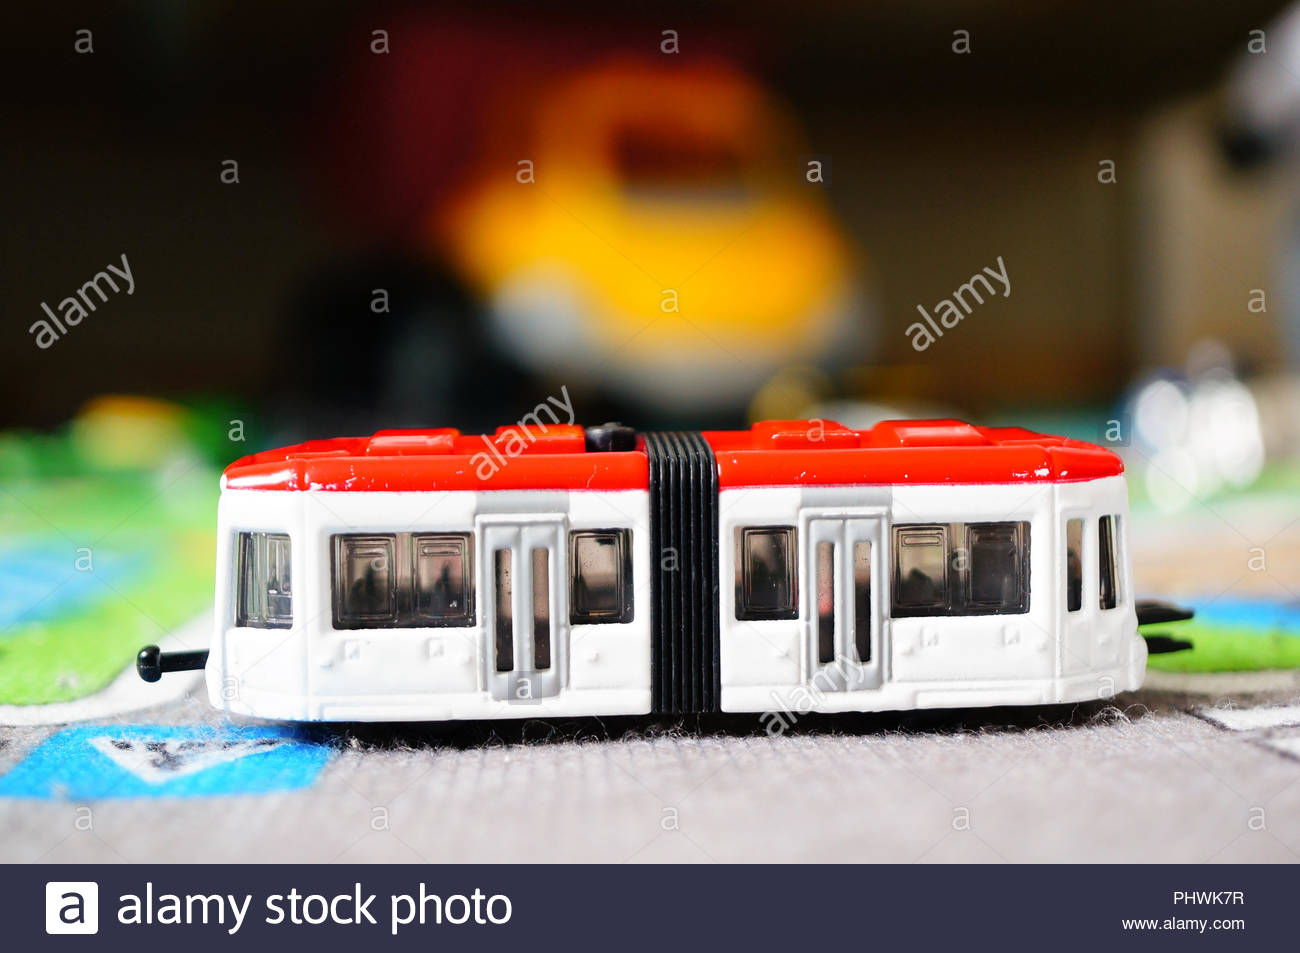 Siku metal toy tram on a street mat in soft focus Stock Photo